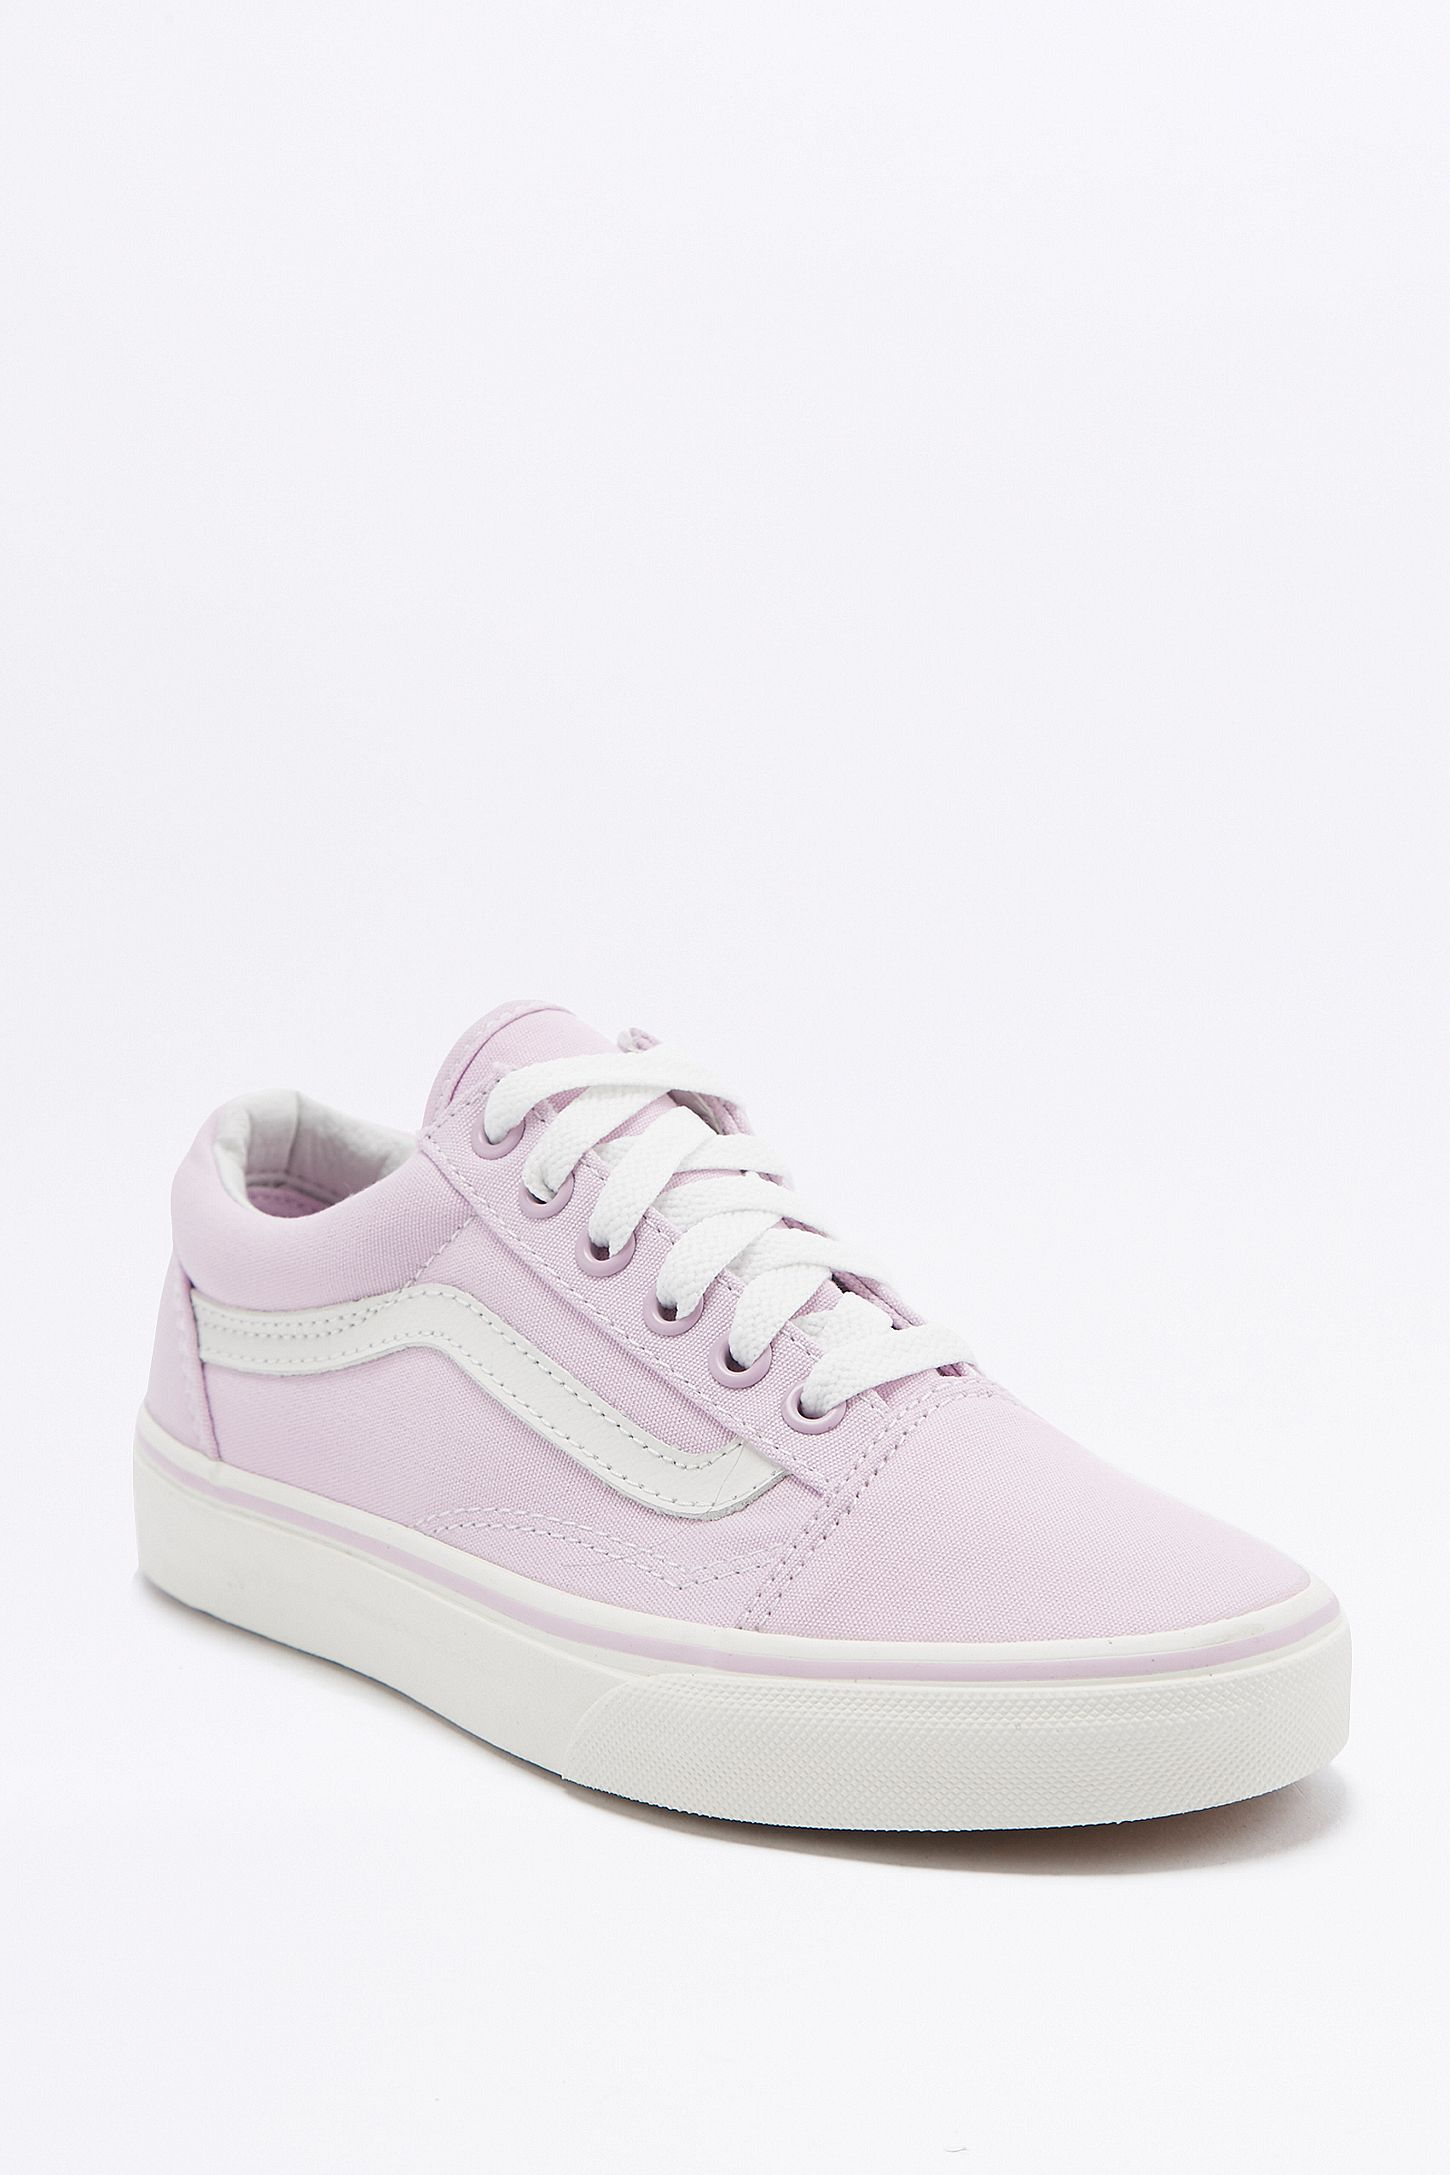 f50bbb8983e7 Vans Old Skool Baby Pink Trainers